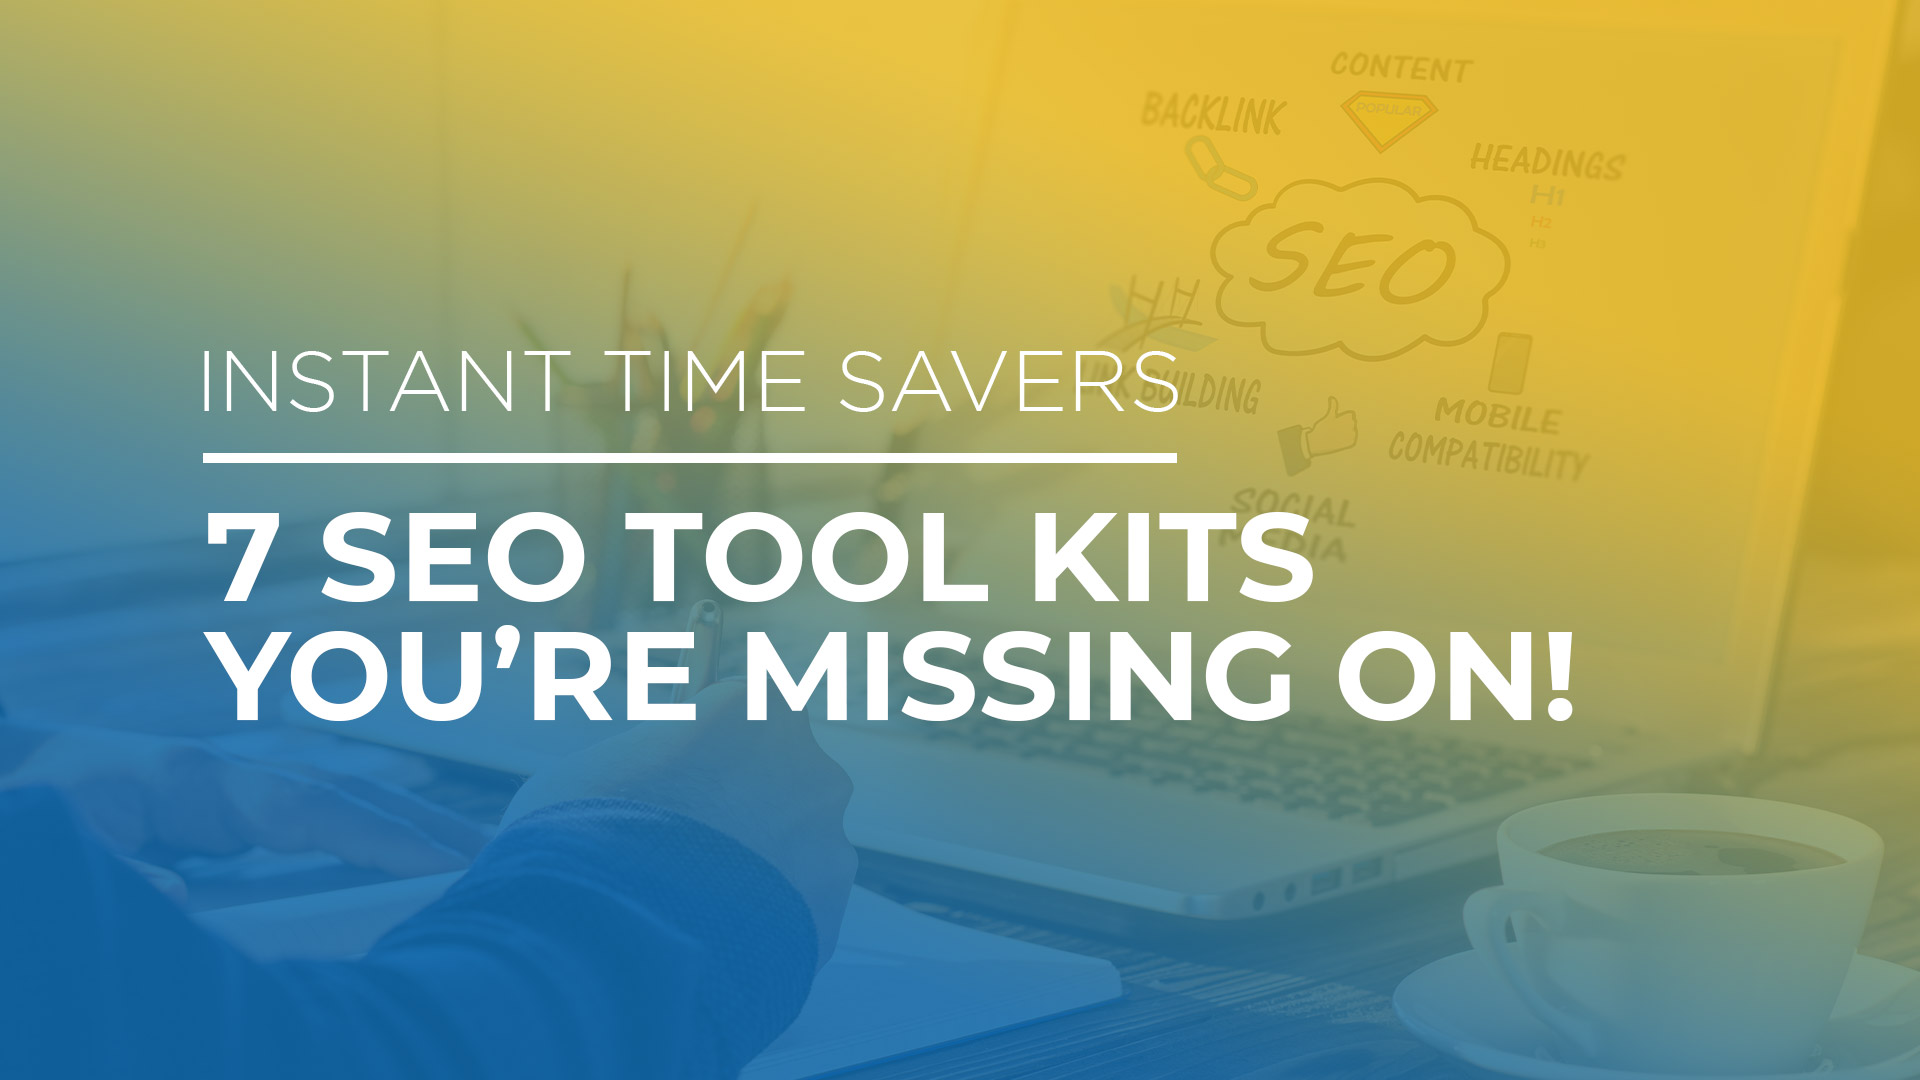 Instant Time Savers - 7 SEO Tool Kits you're Missing On